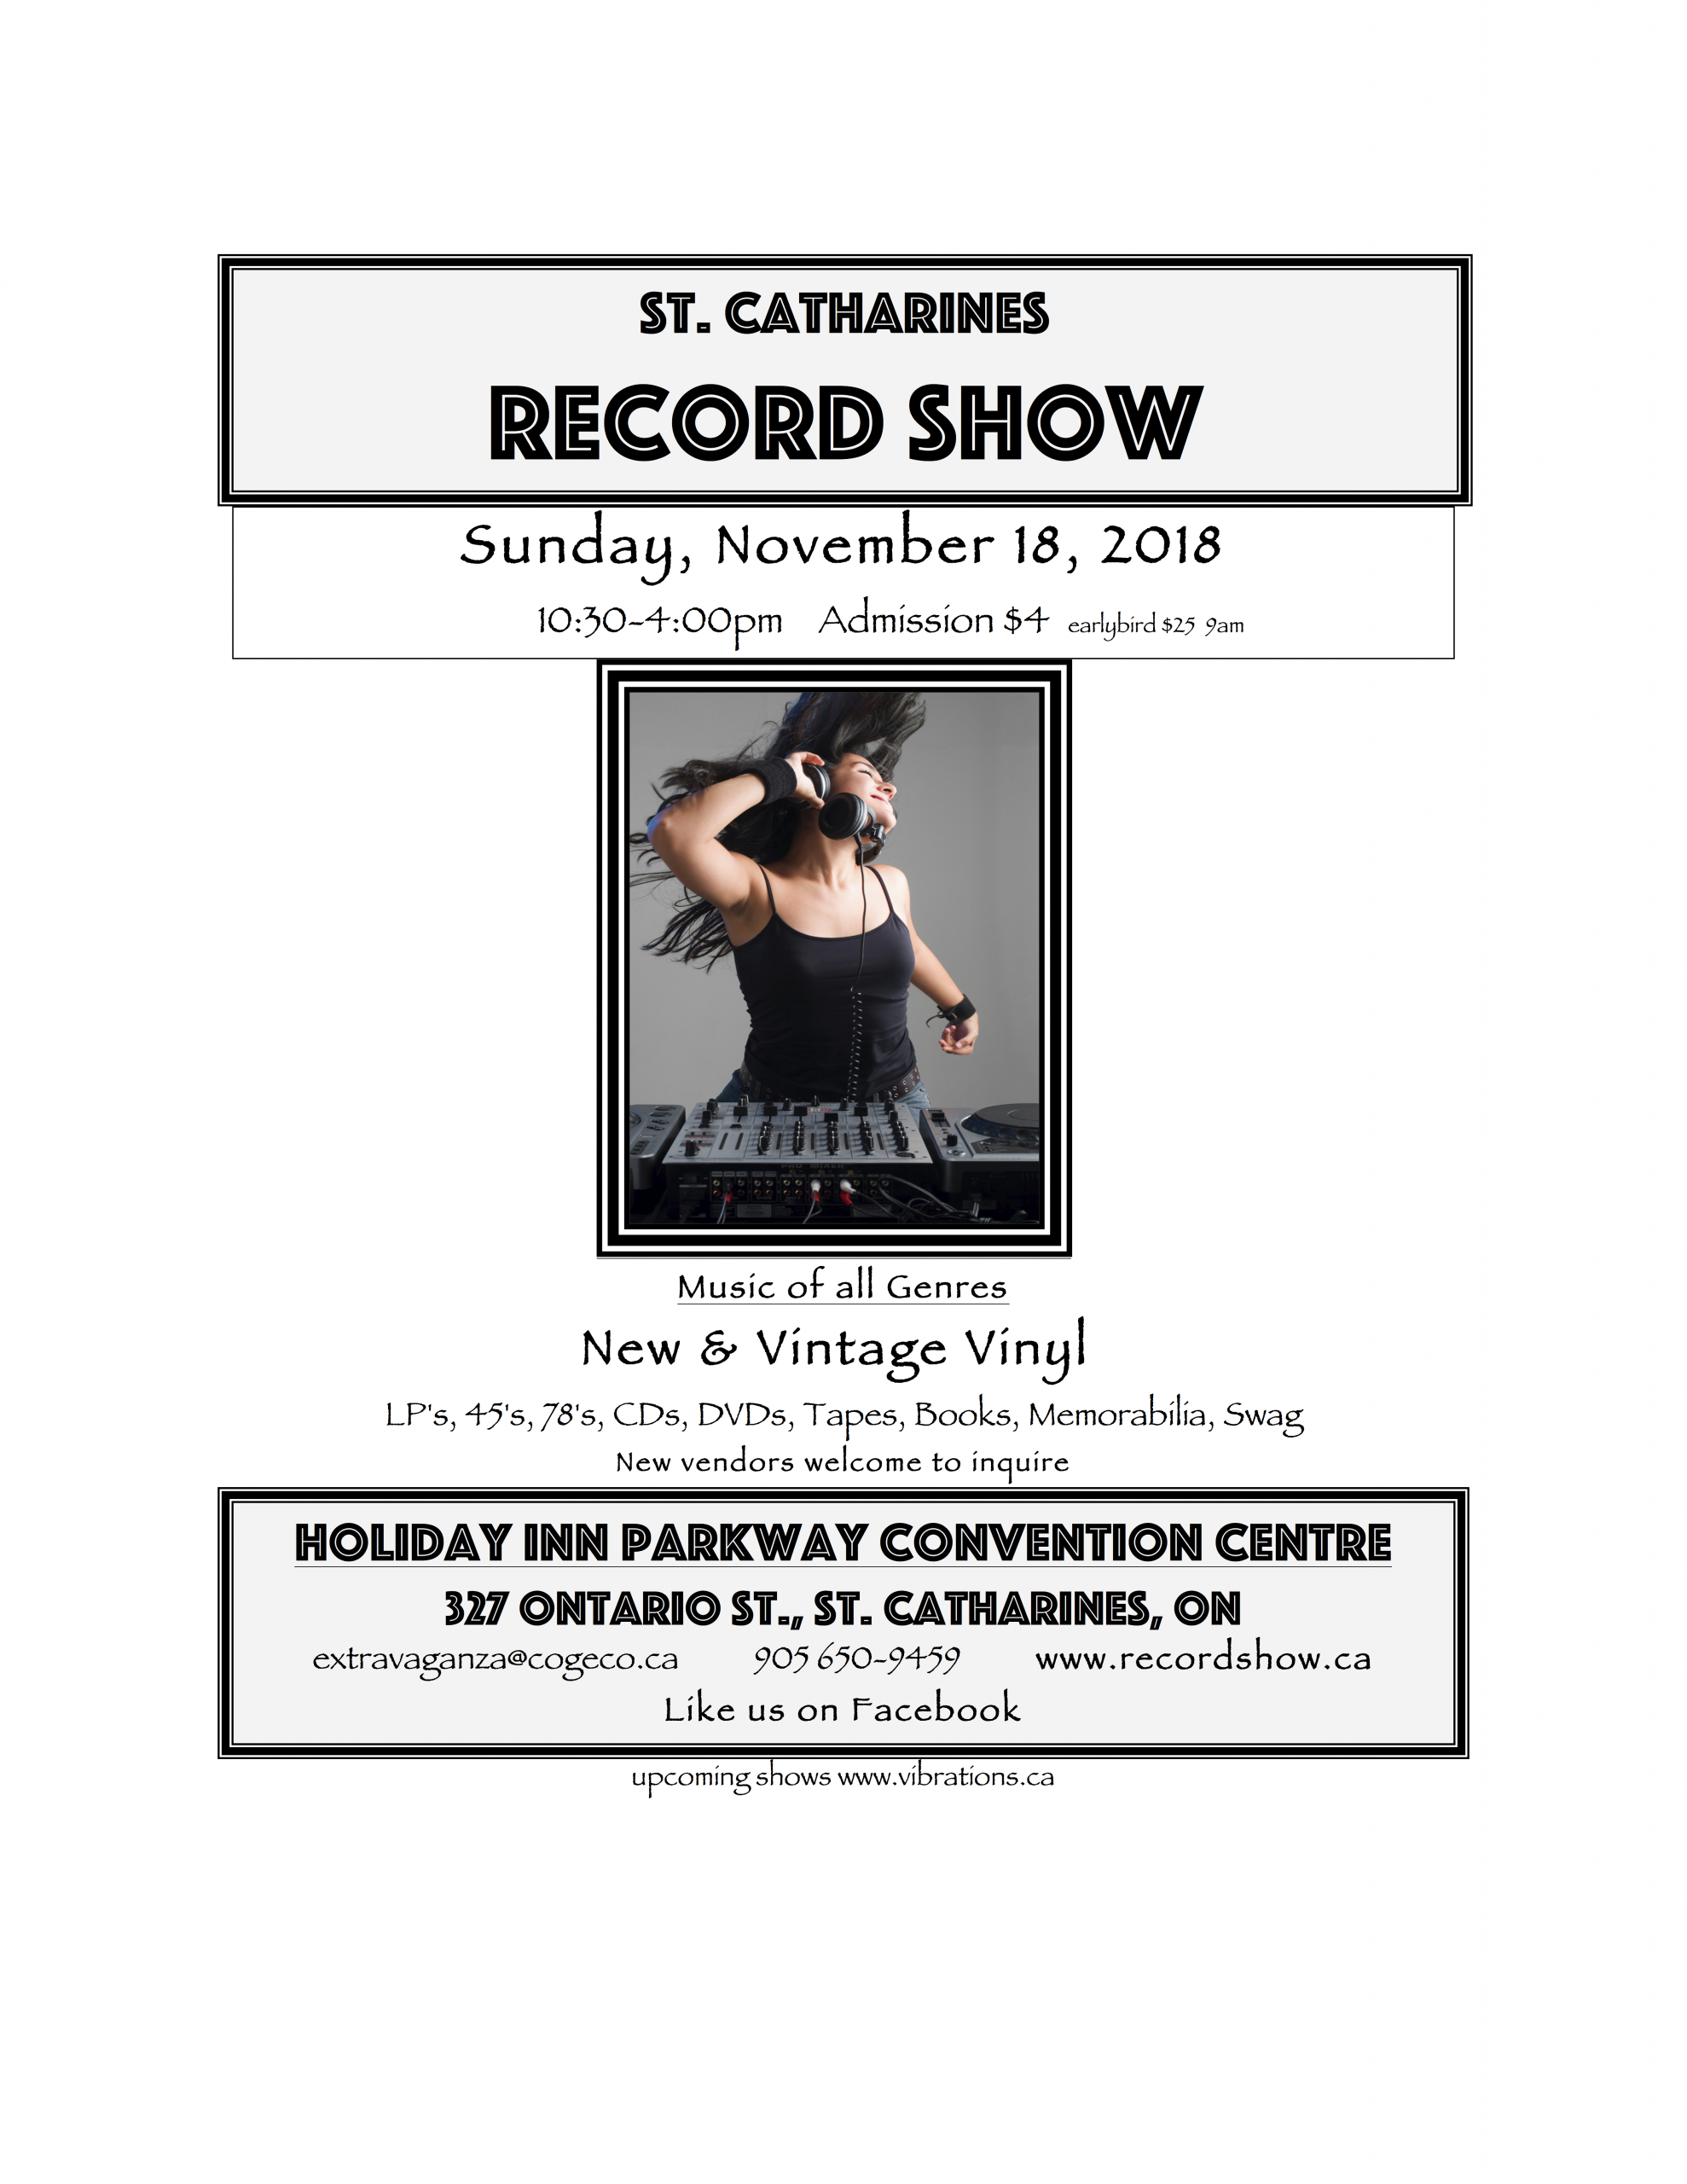 St Catharines Record Show